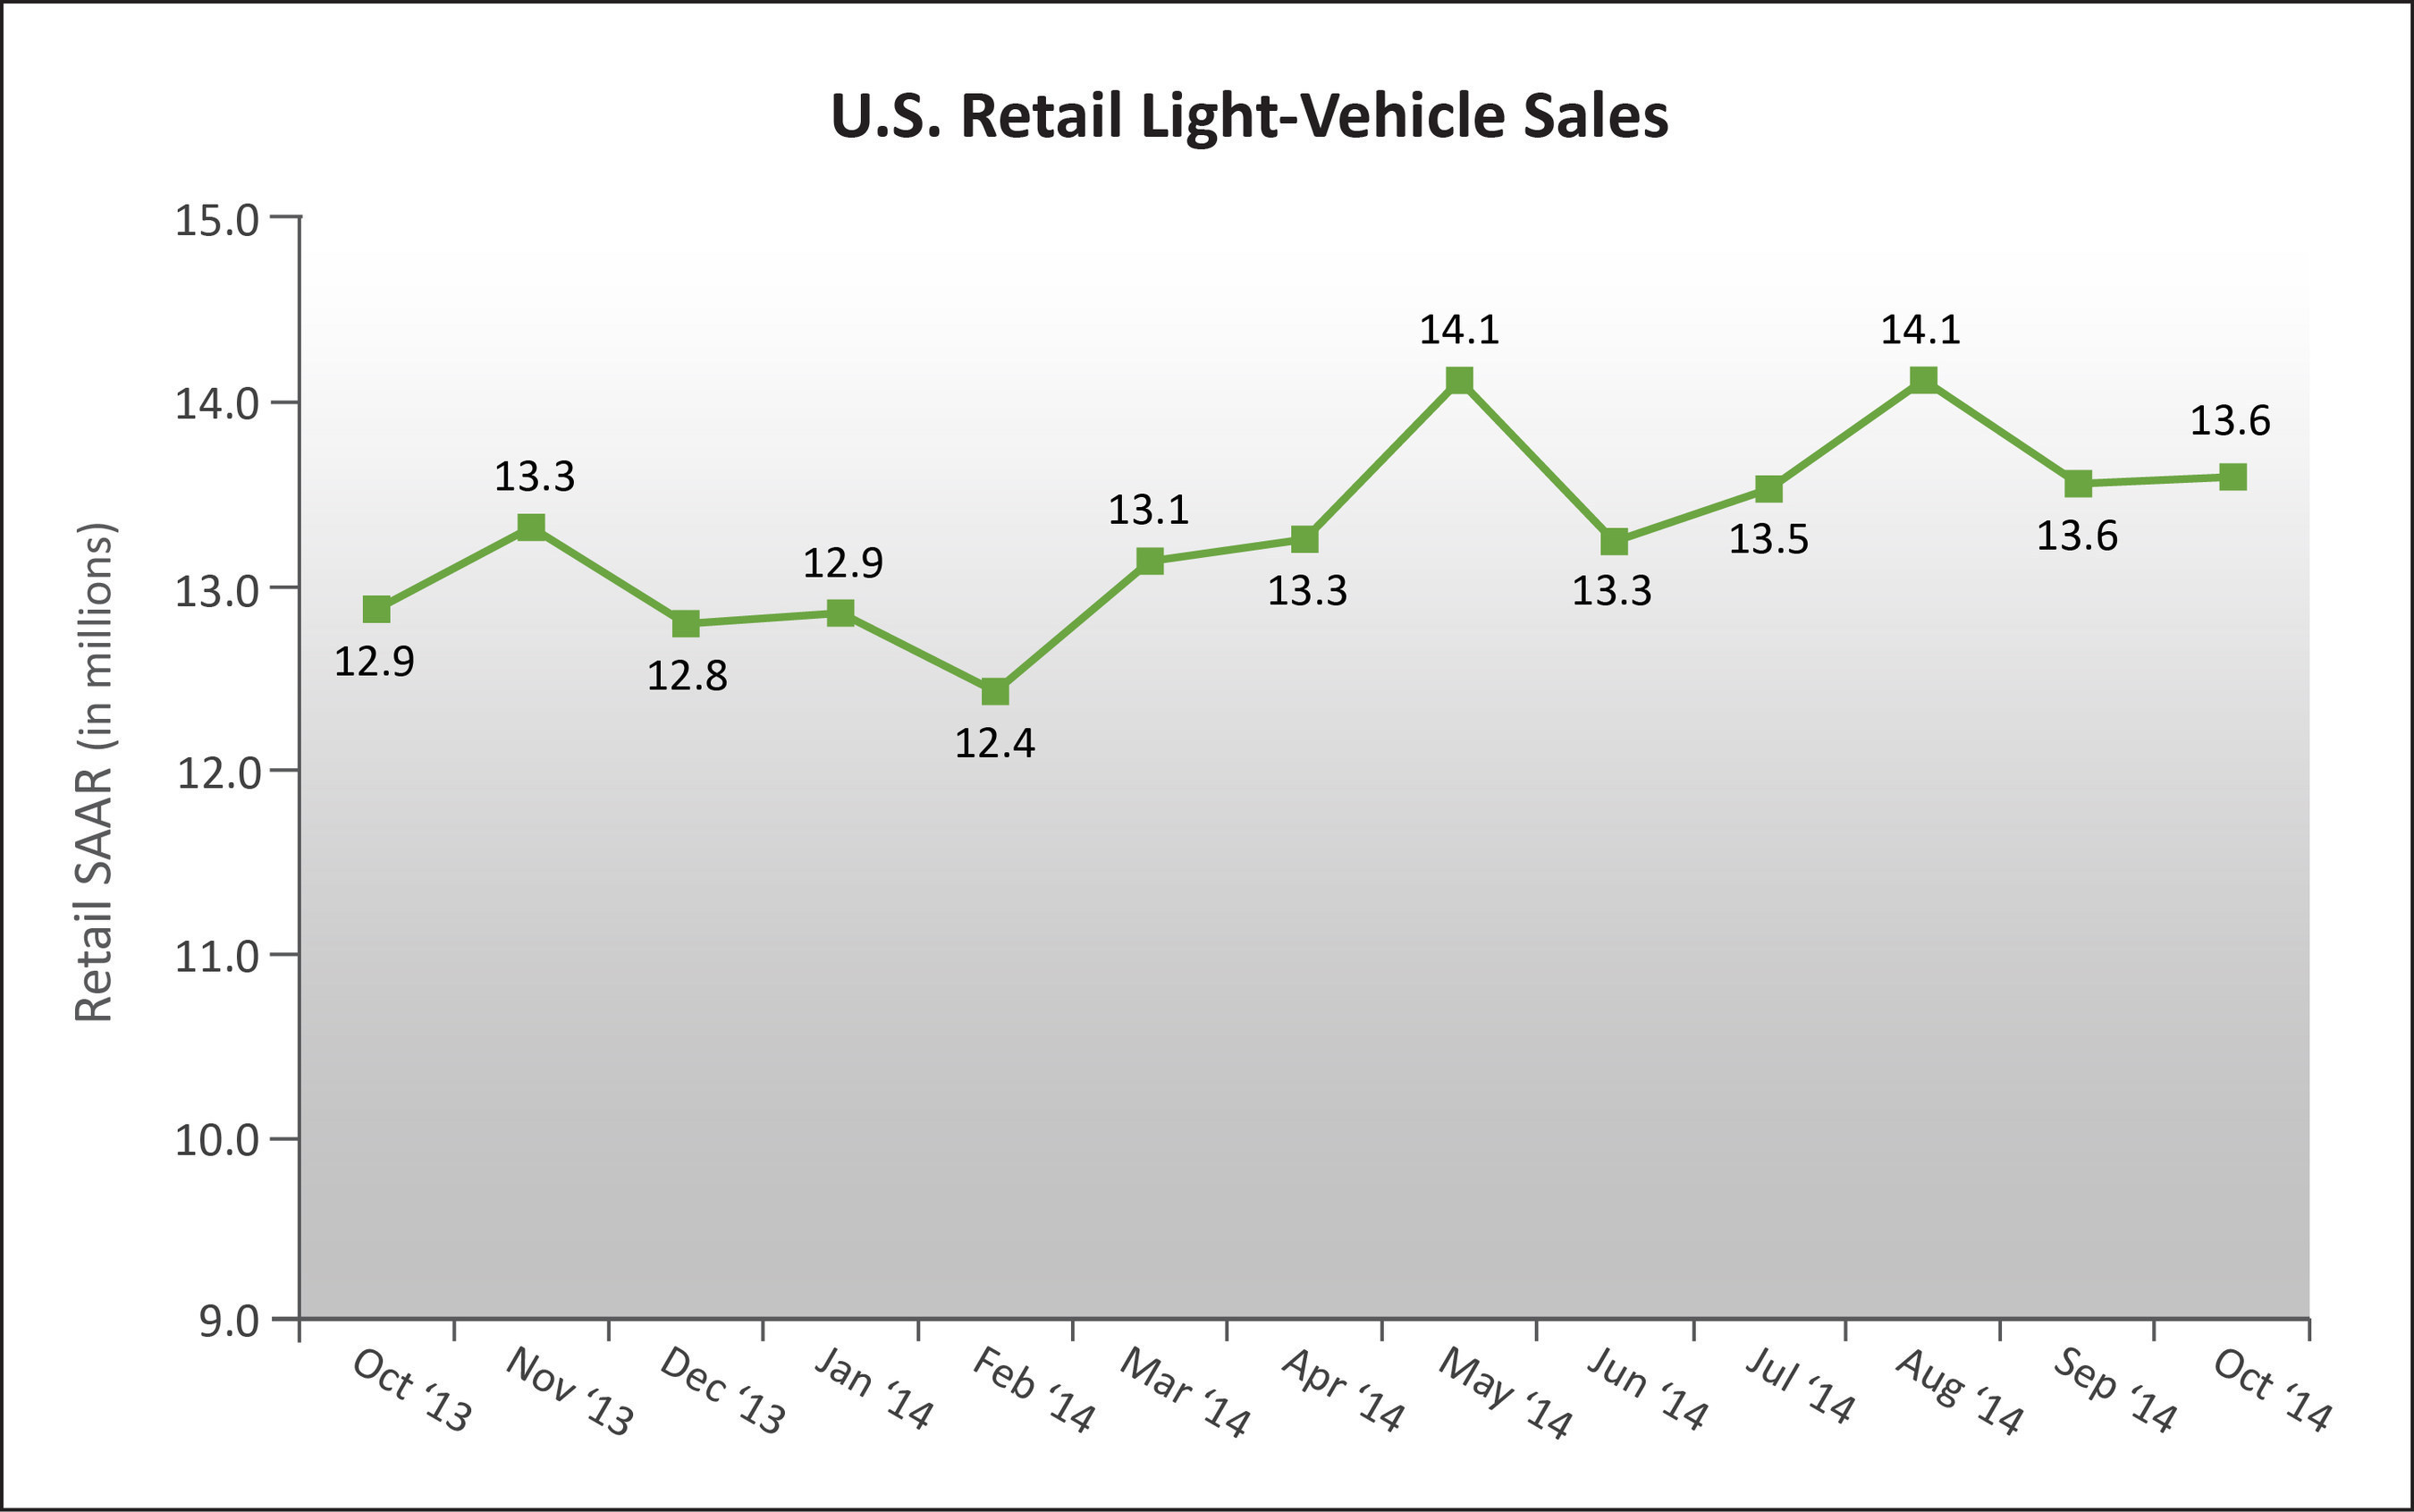 U.S. Retail SAAR-October 2013 to October 2014 (in millions of units)